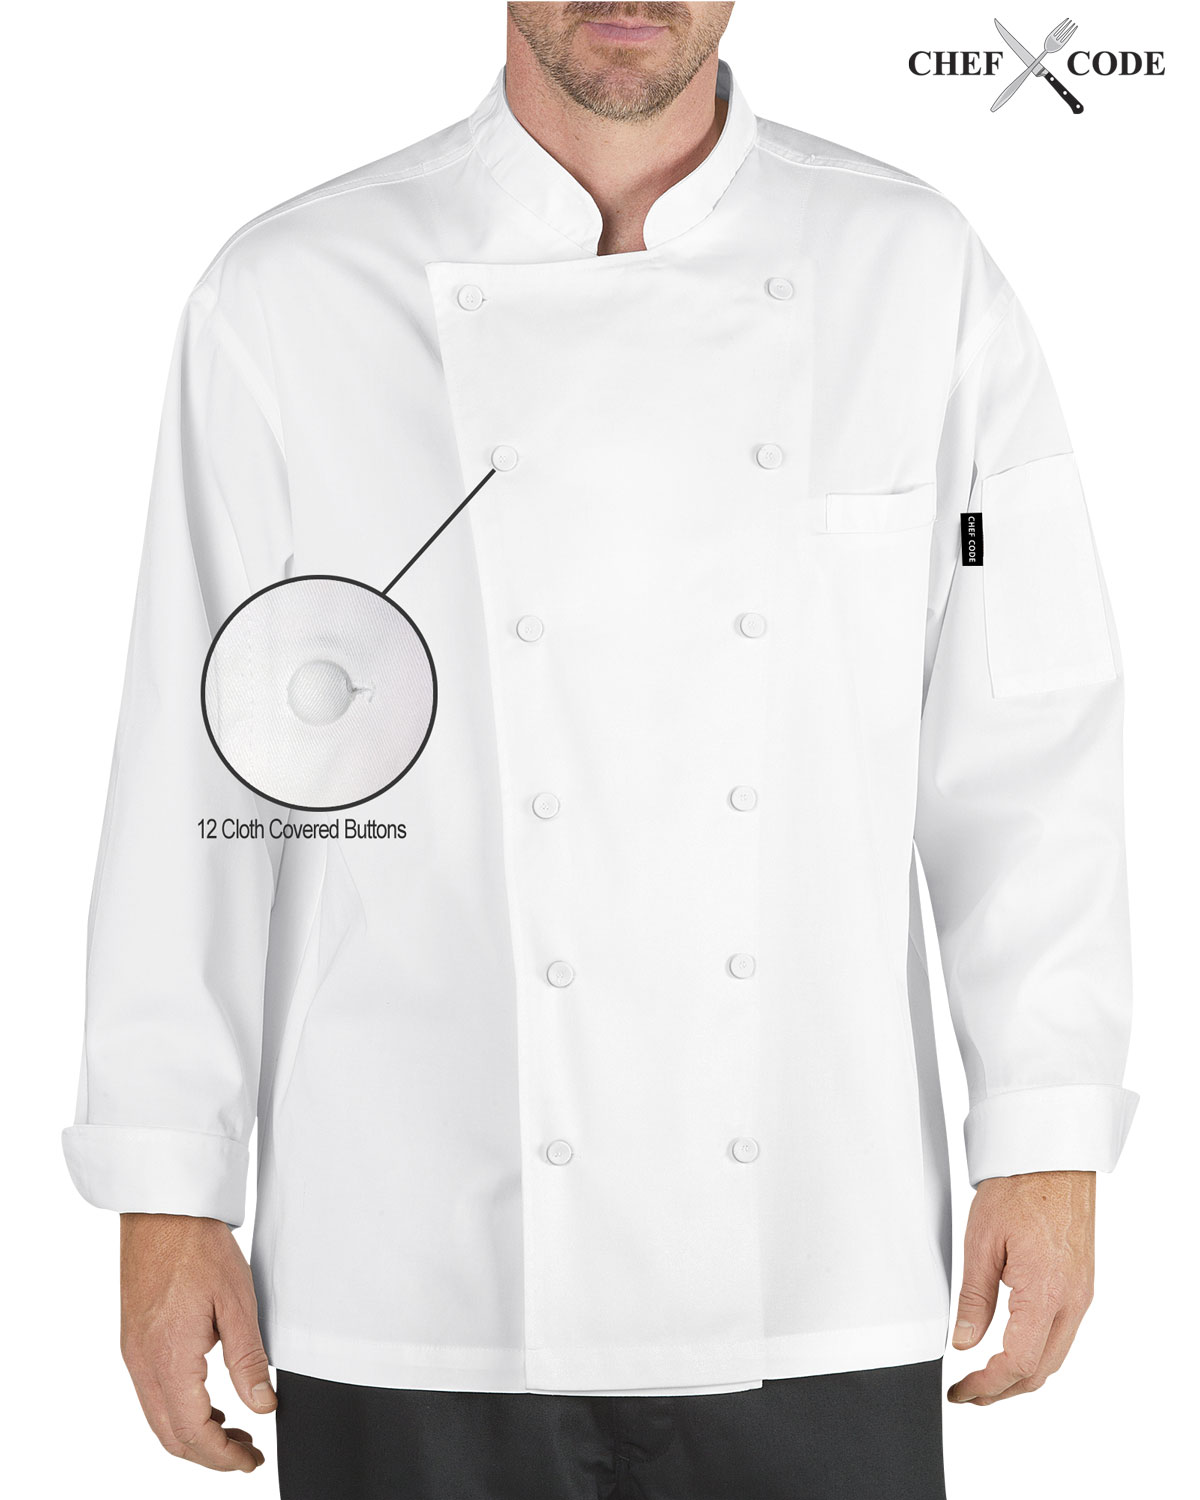 Chef Code Executive Chef Coat Unisex with Cloth Covered Buttons CC101 by